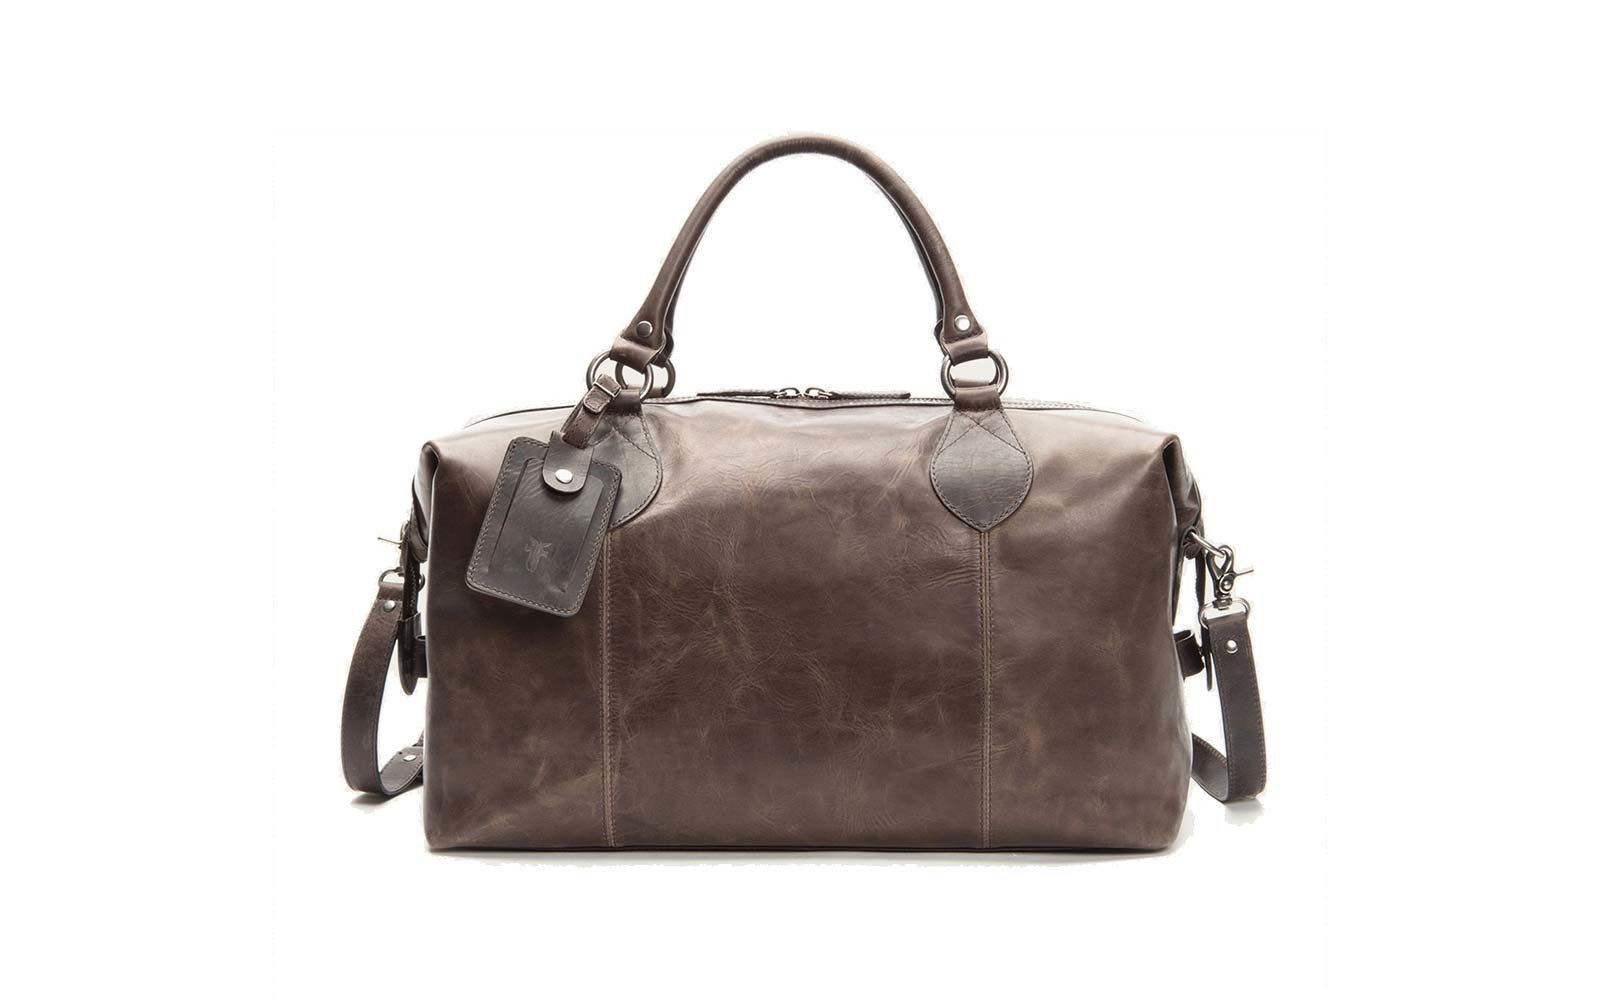 Frye duffel travel bag